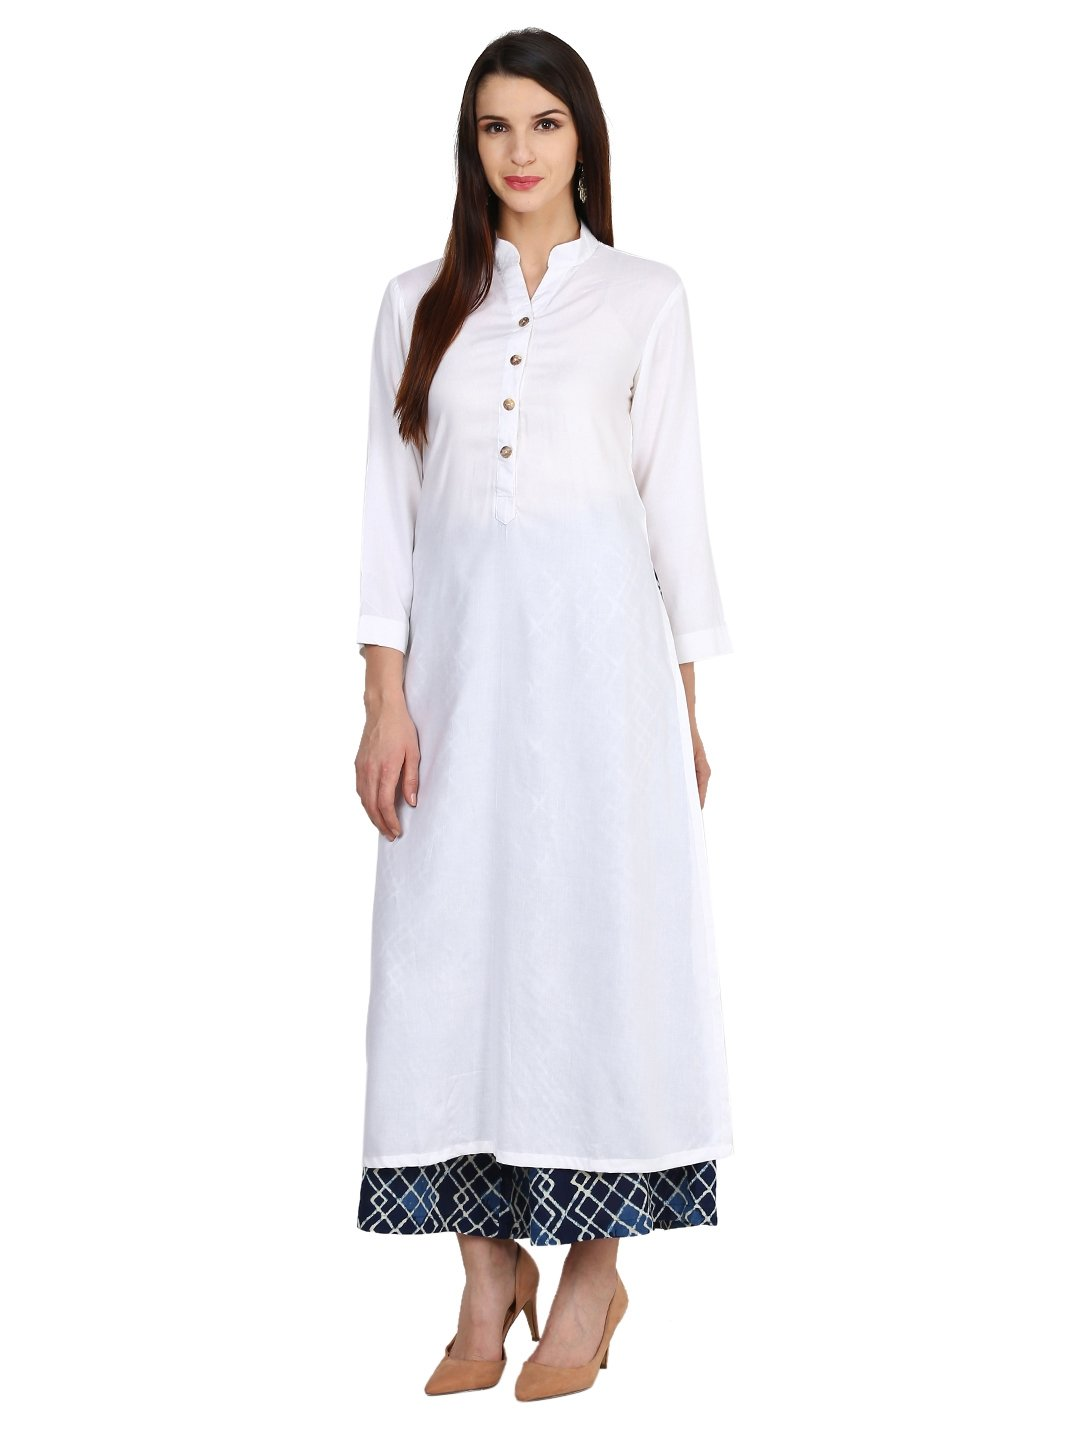 Castle Off-White Solid Rayon Kurta